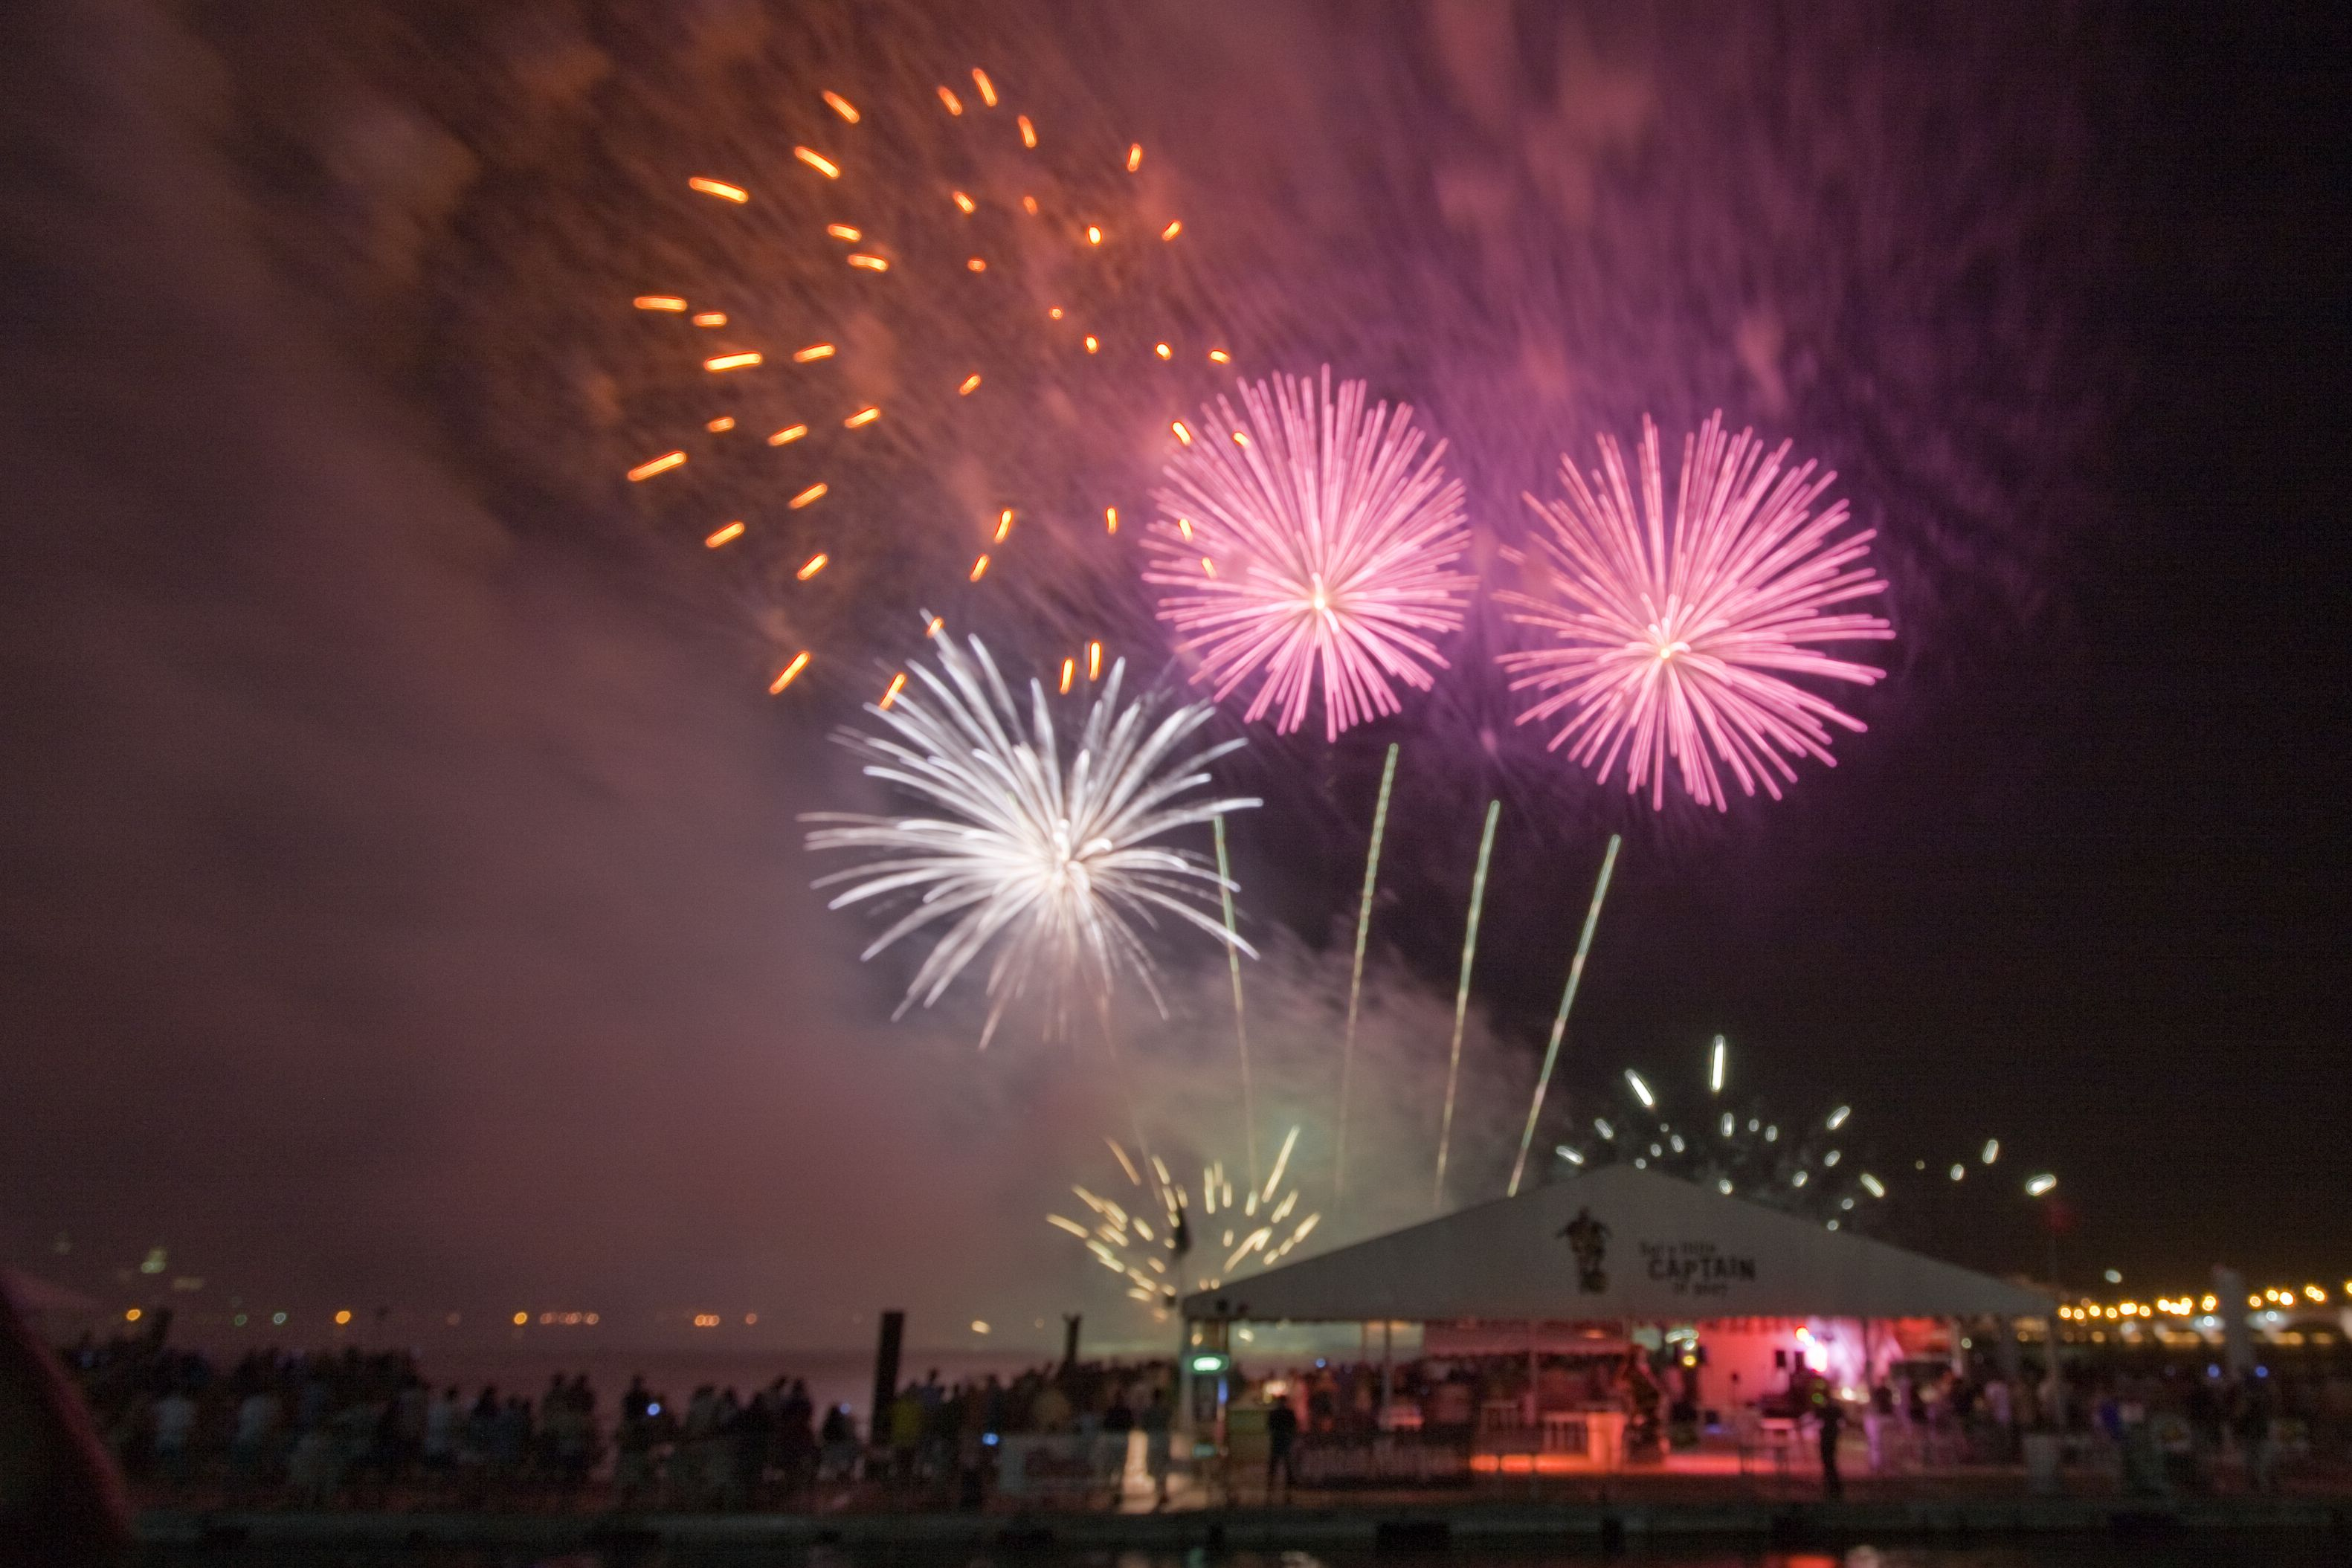 Sunfest Hosts One Of The Largest Fireworks Shows On The East Coast Sunfest Thepalmbeaches West Palm Beach South Florida Palm Beach